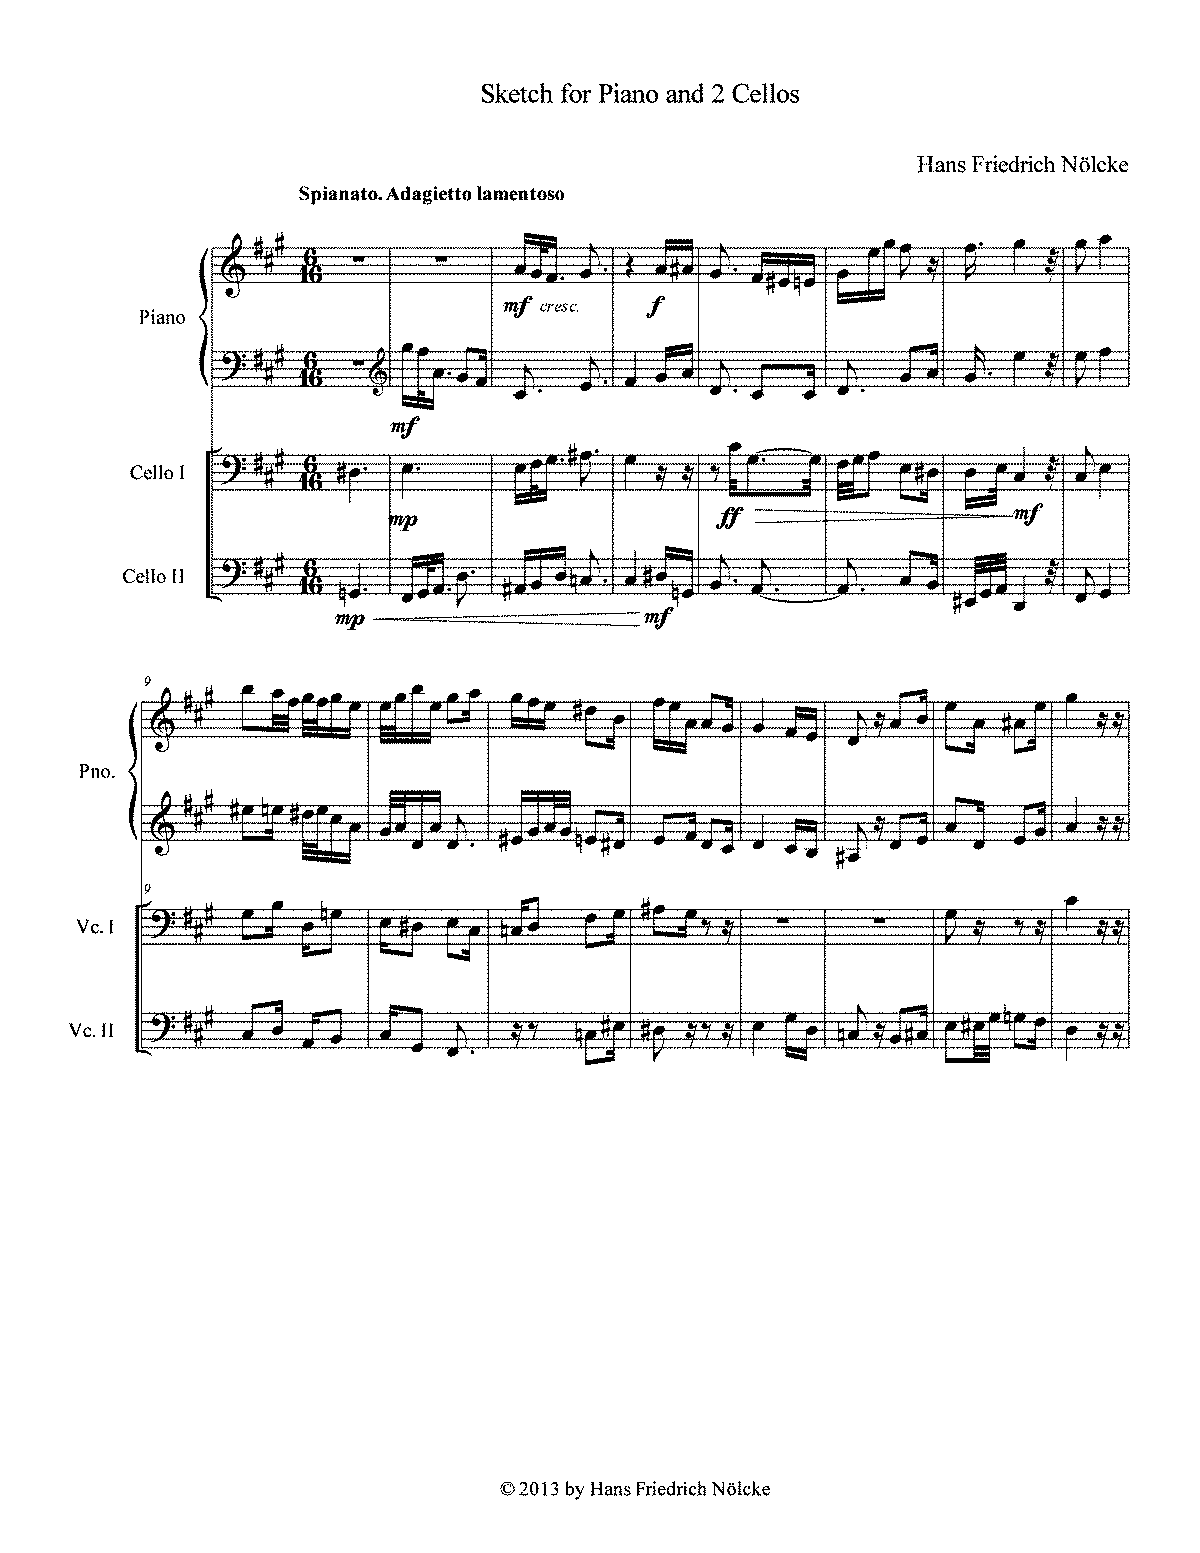 PMLP466507-Sketch for Piano and 2 Cellos by Hans Friedrich Nölcke.pdf